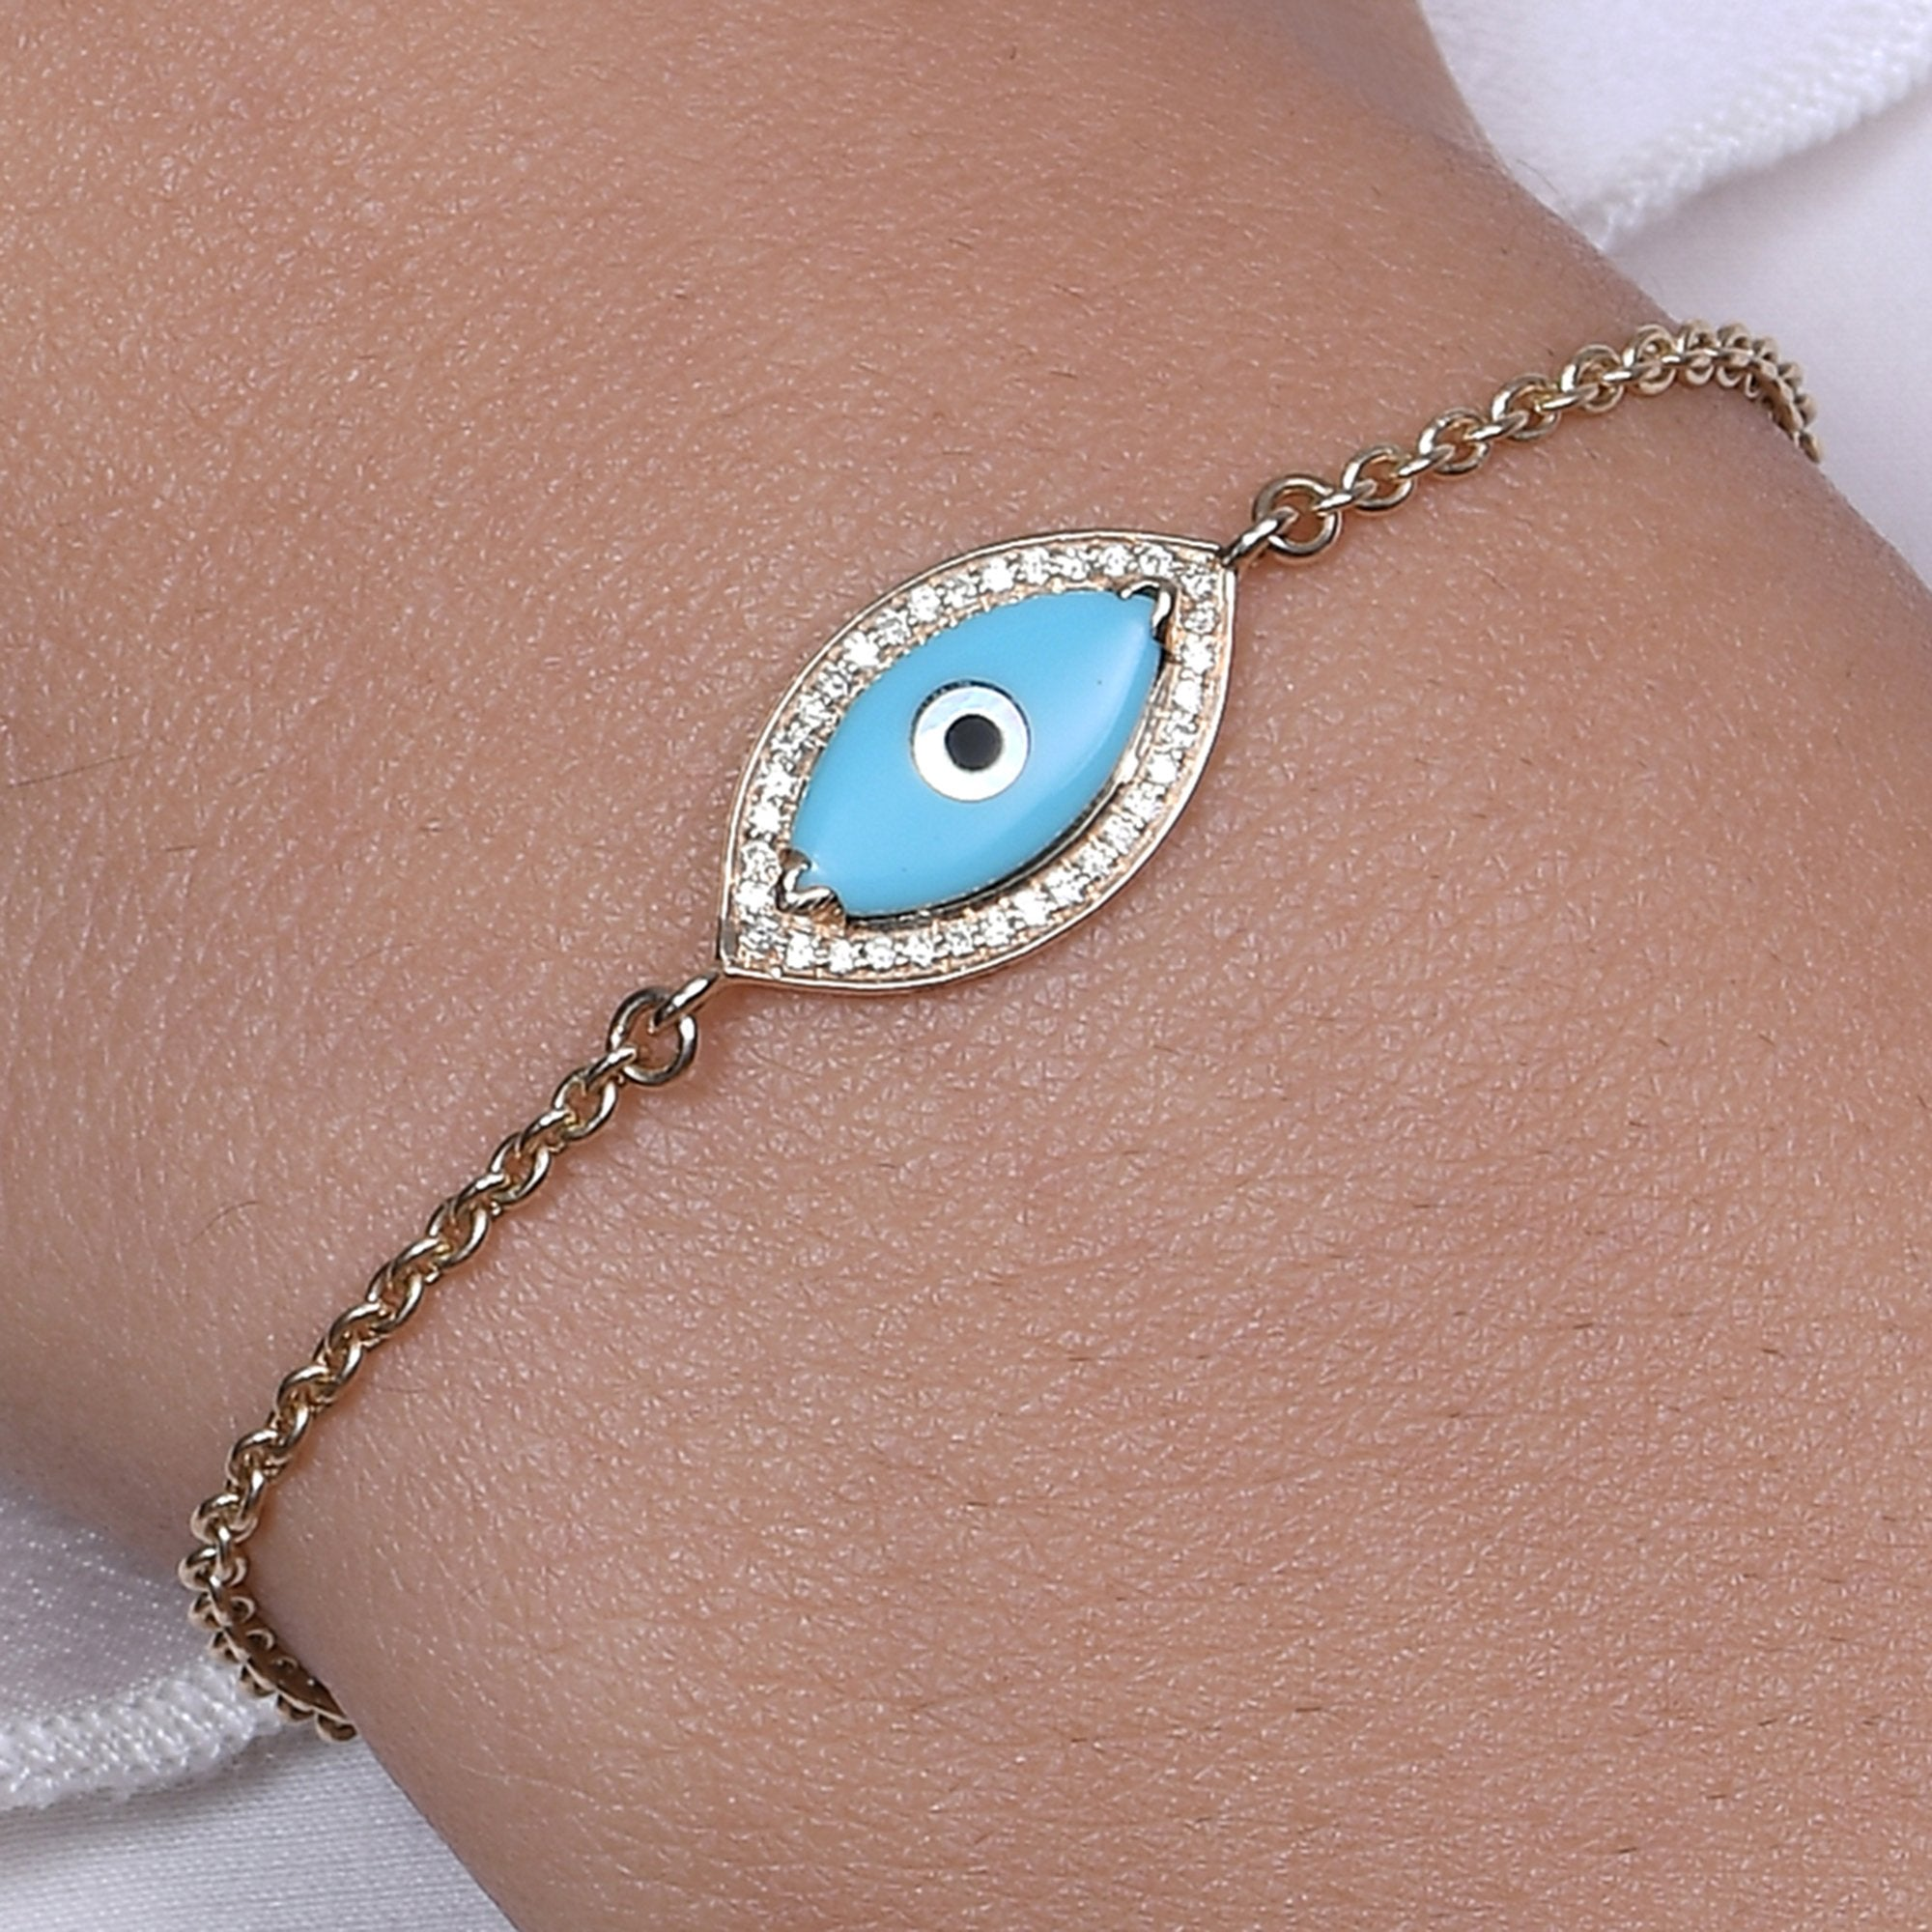 Small Marquise Turquoise Evil Eye Diamond Chain Bracelet